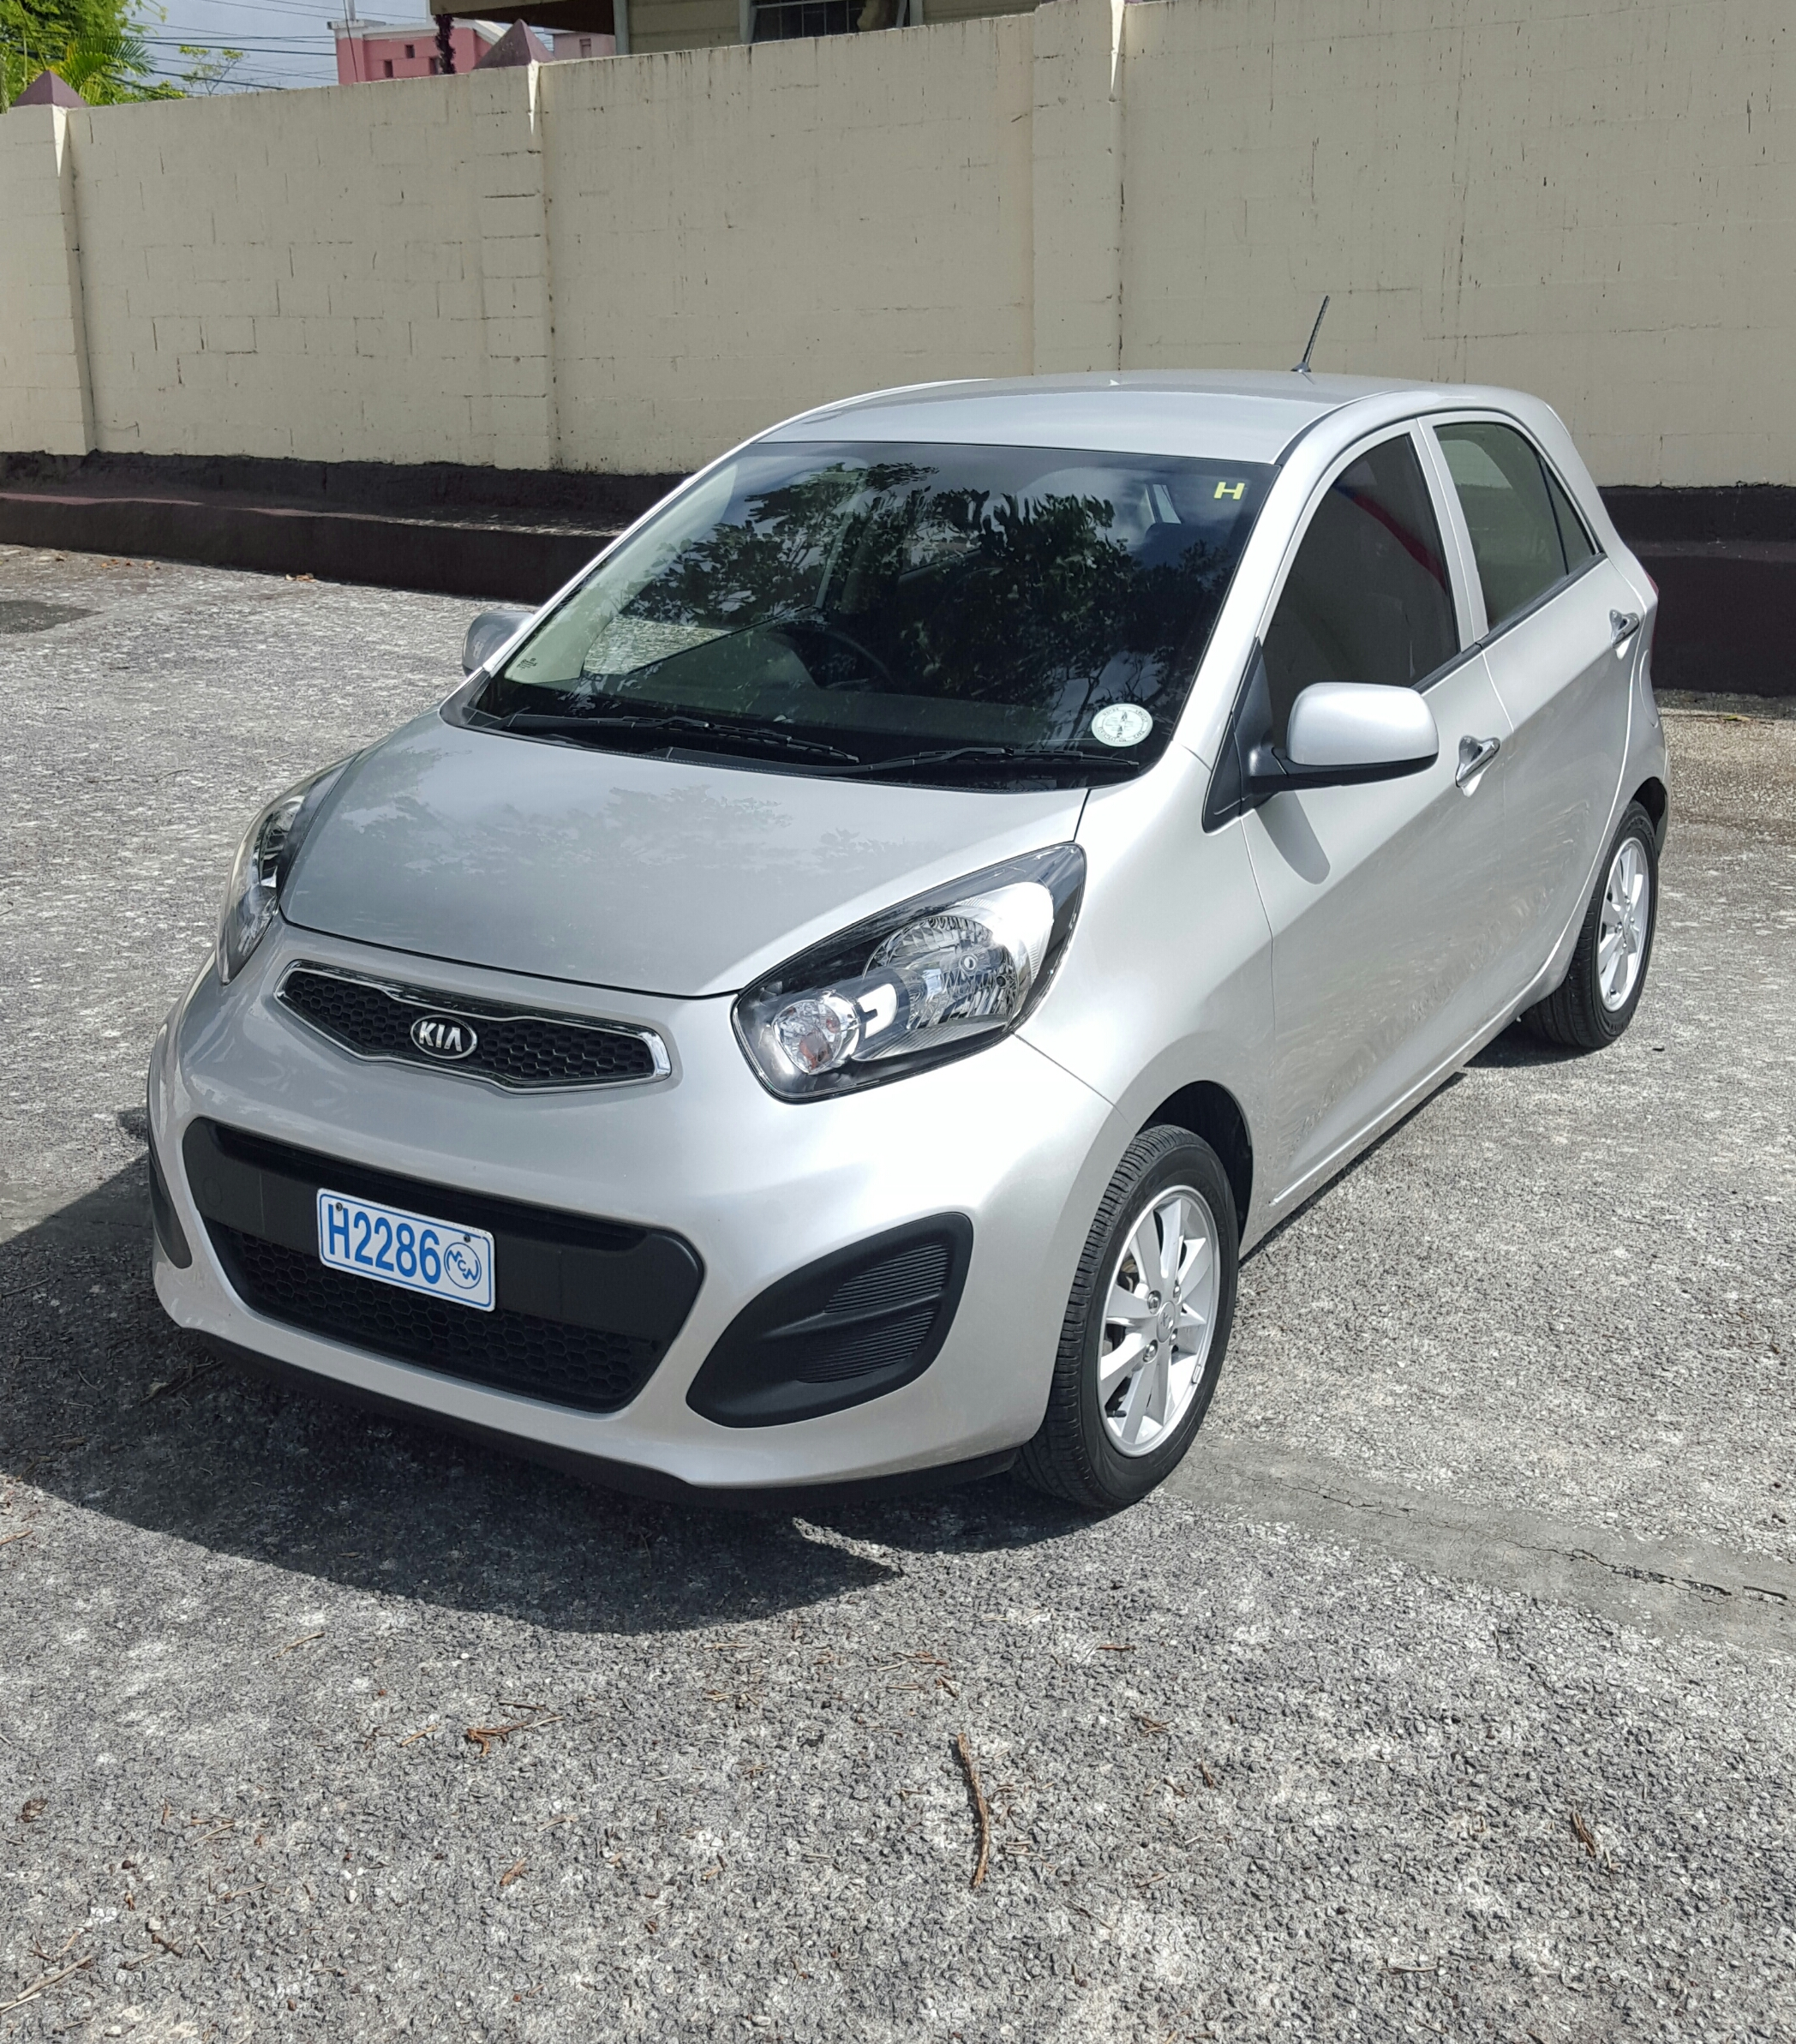 Vehicles - M.A.H Car Rentals - Car Rental Barbados